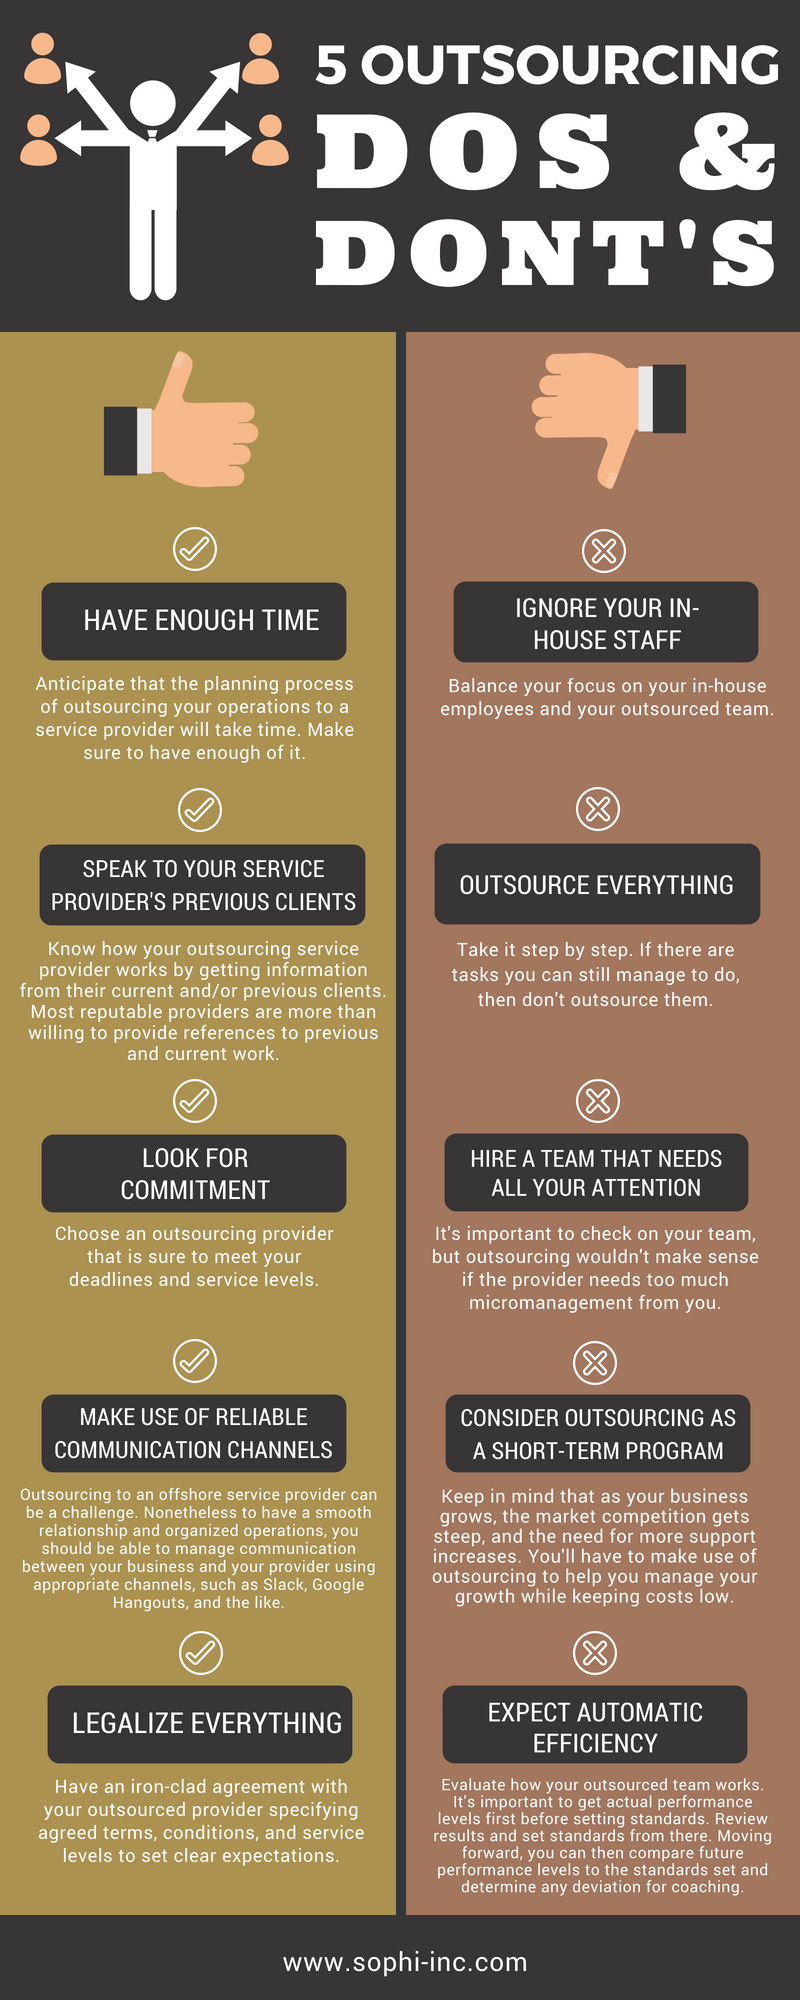 5 Outsourcing Dos & Don'ts.png